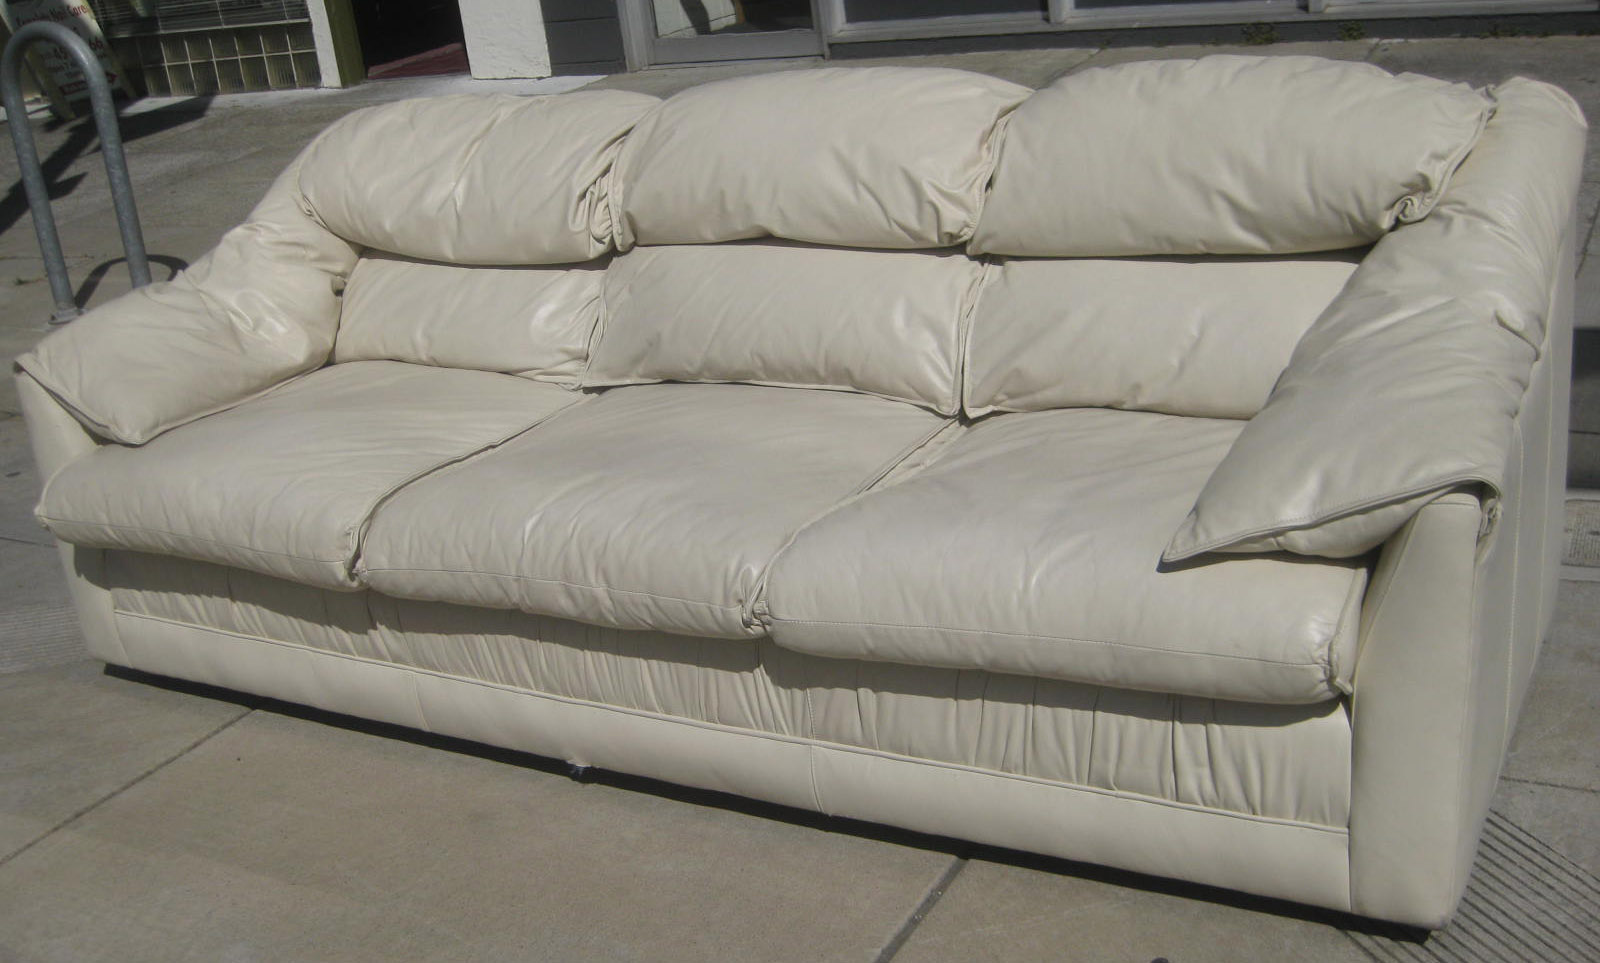 UHURU FURNITURE amp COLLECTIBLES SOLD White Leather Sofa  : SofaWhiteLeather from uhurufurniture.blogspot.com size 1600 x 963 jpeg 196kB